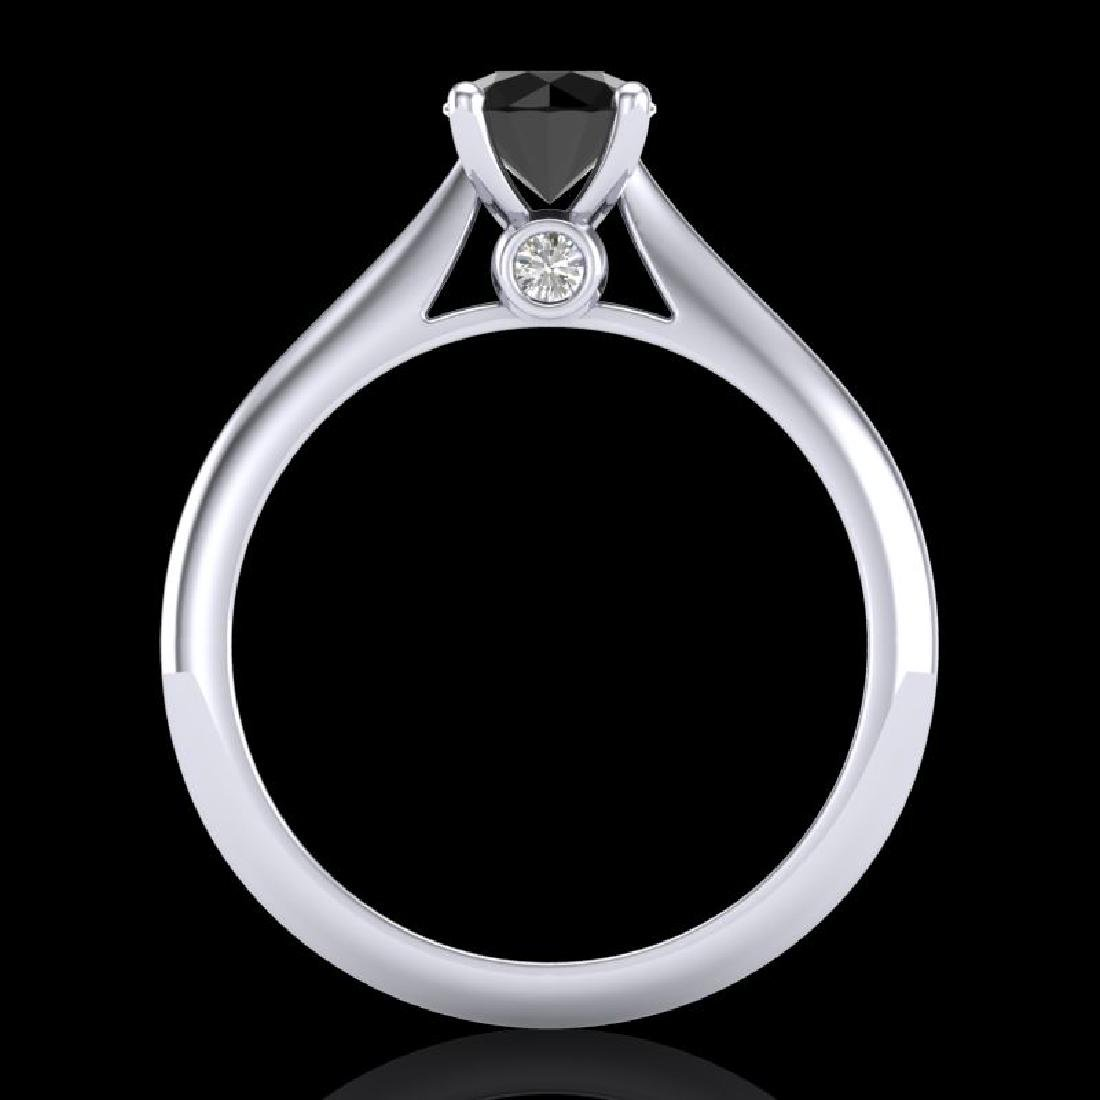 0.83 CTW Fancy Black Diamond Solitaire Engagement Art - 3